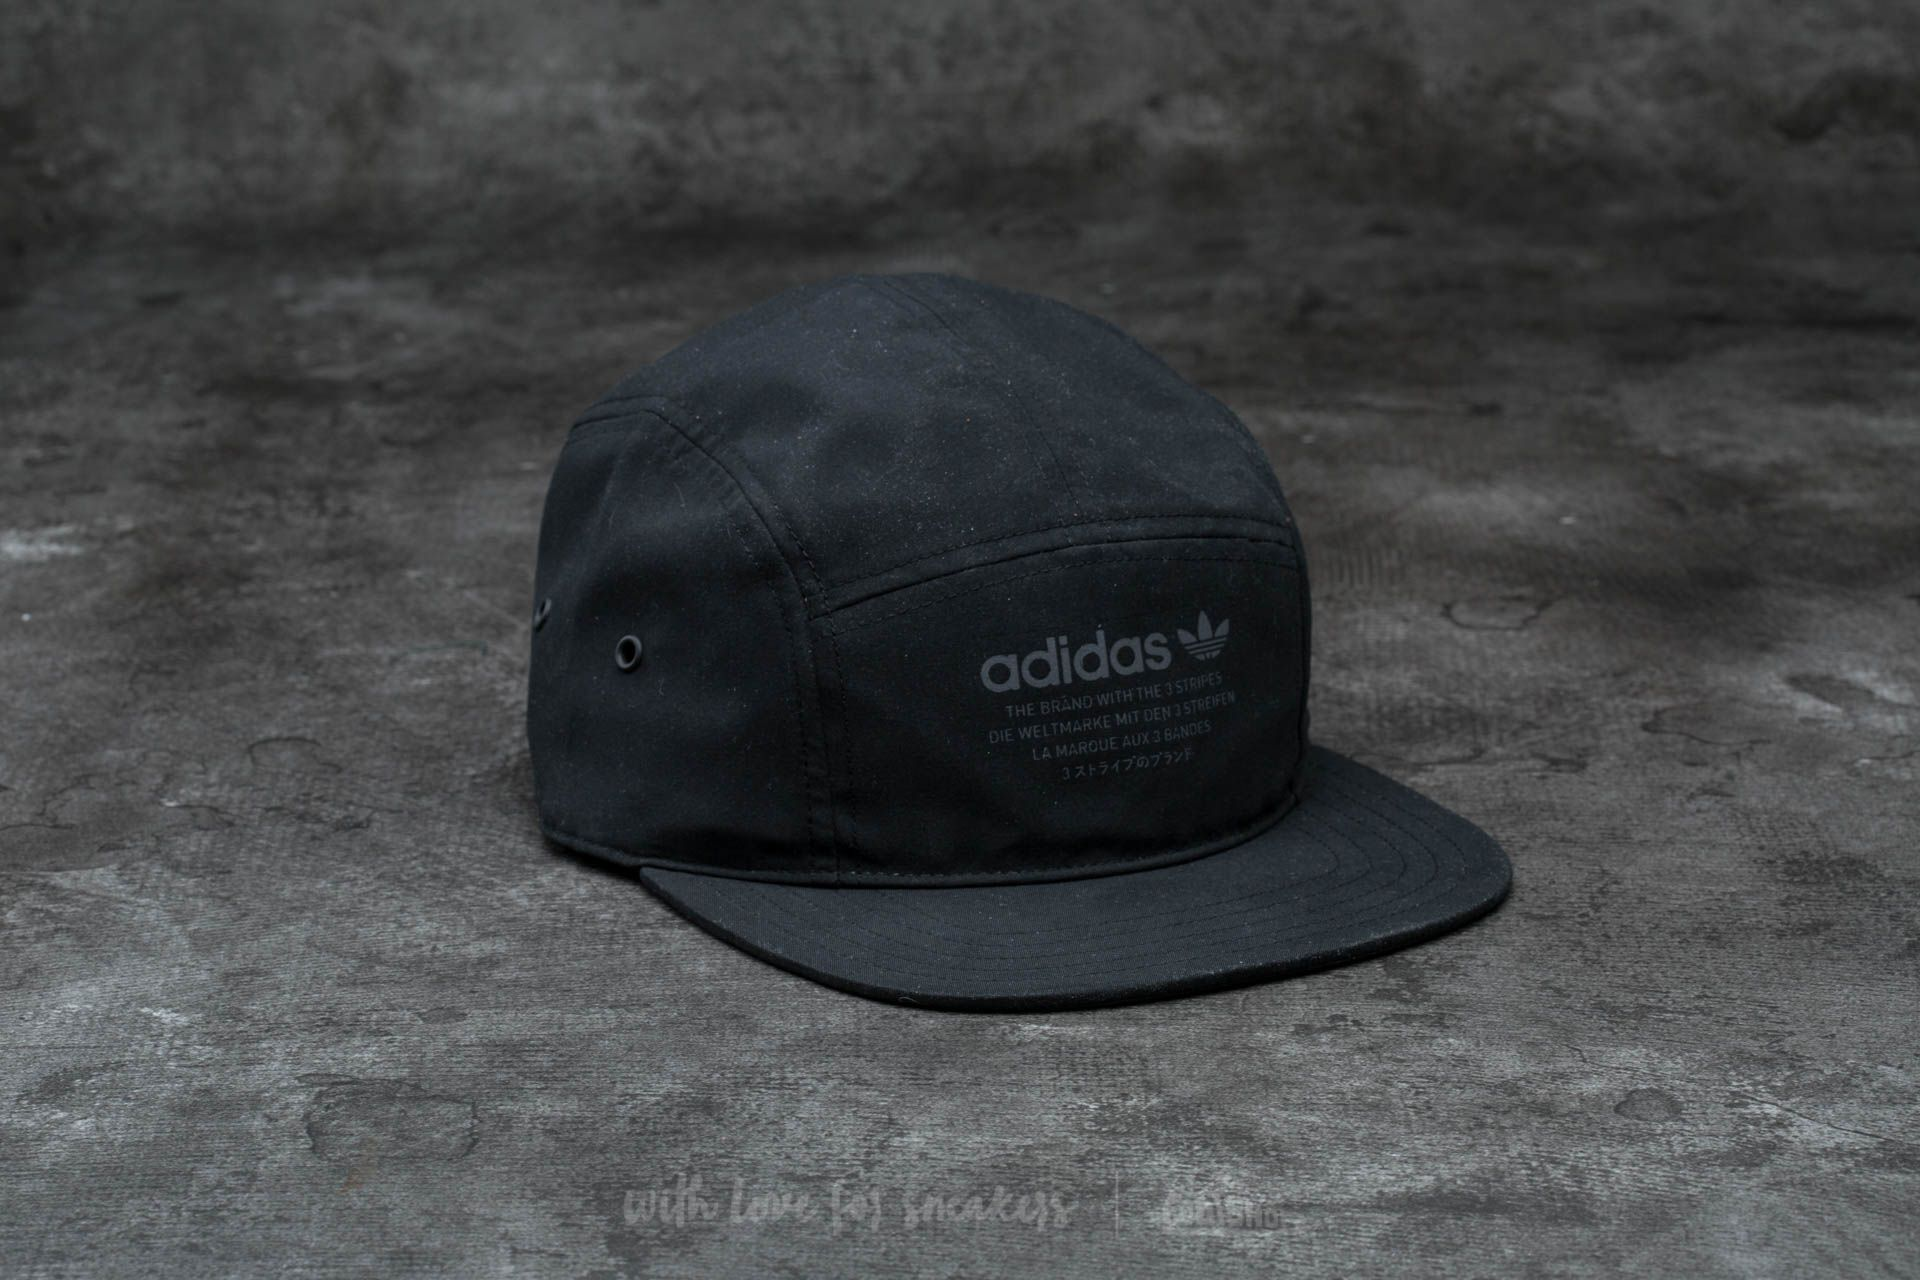 baf73631574 adidas NMD 5 Panel Cap Black